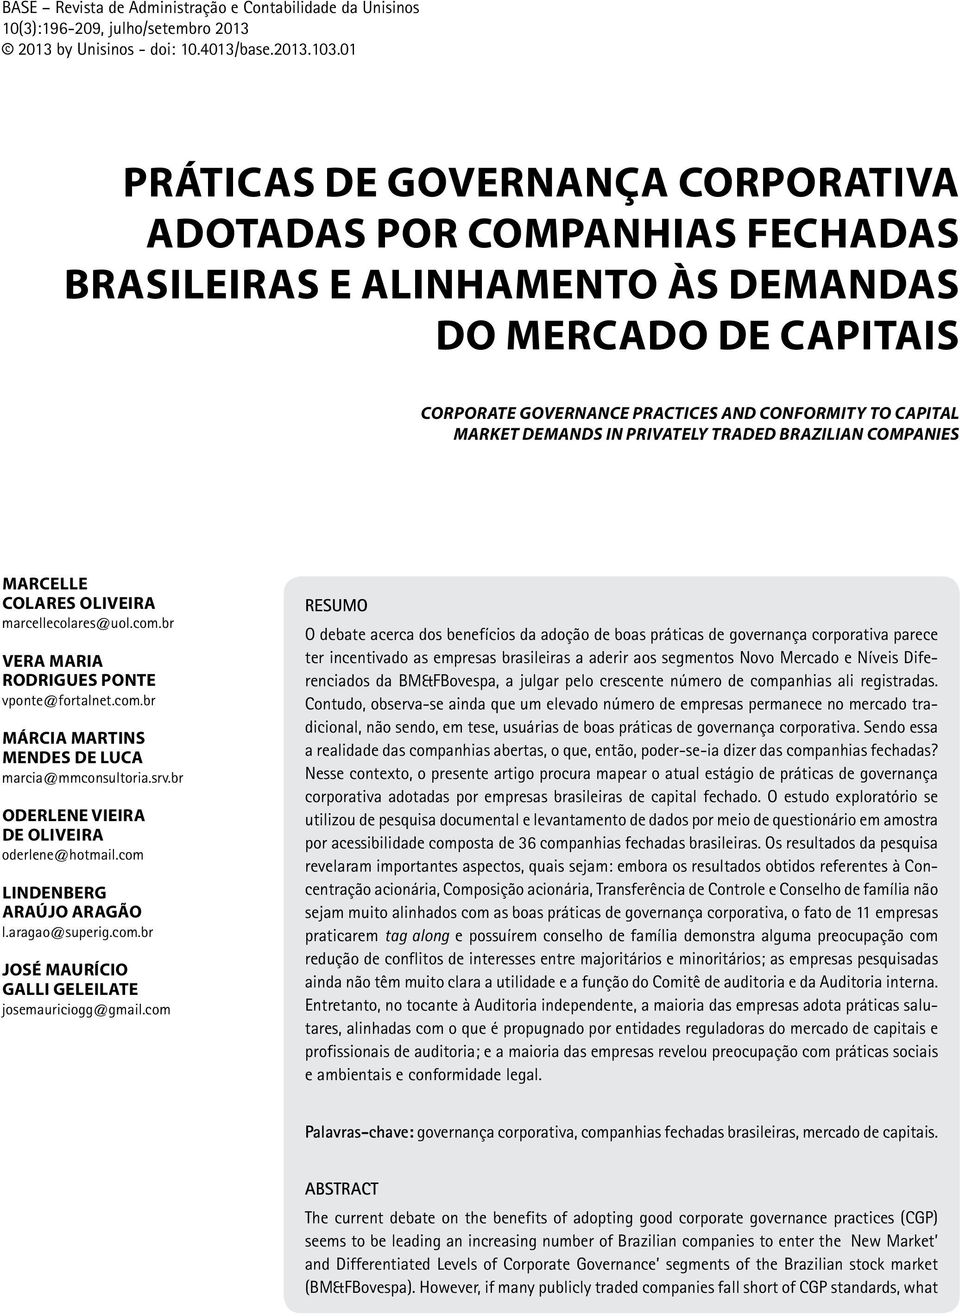 DEMANDS IN PRIVATELY TRADED BRAZILIAN COMPANIES MARCELLE COLARES OLIVEIRA marcellecolares@uol.com.br VERA MARIA RODRIGUES PONTE vponte@fortalnet.com.br MÁRCIA MARTINS MENDES DE LUCA marcia@mmconsultoria.